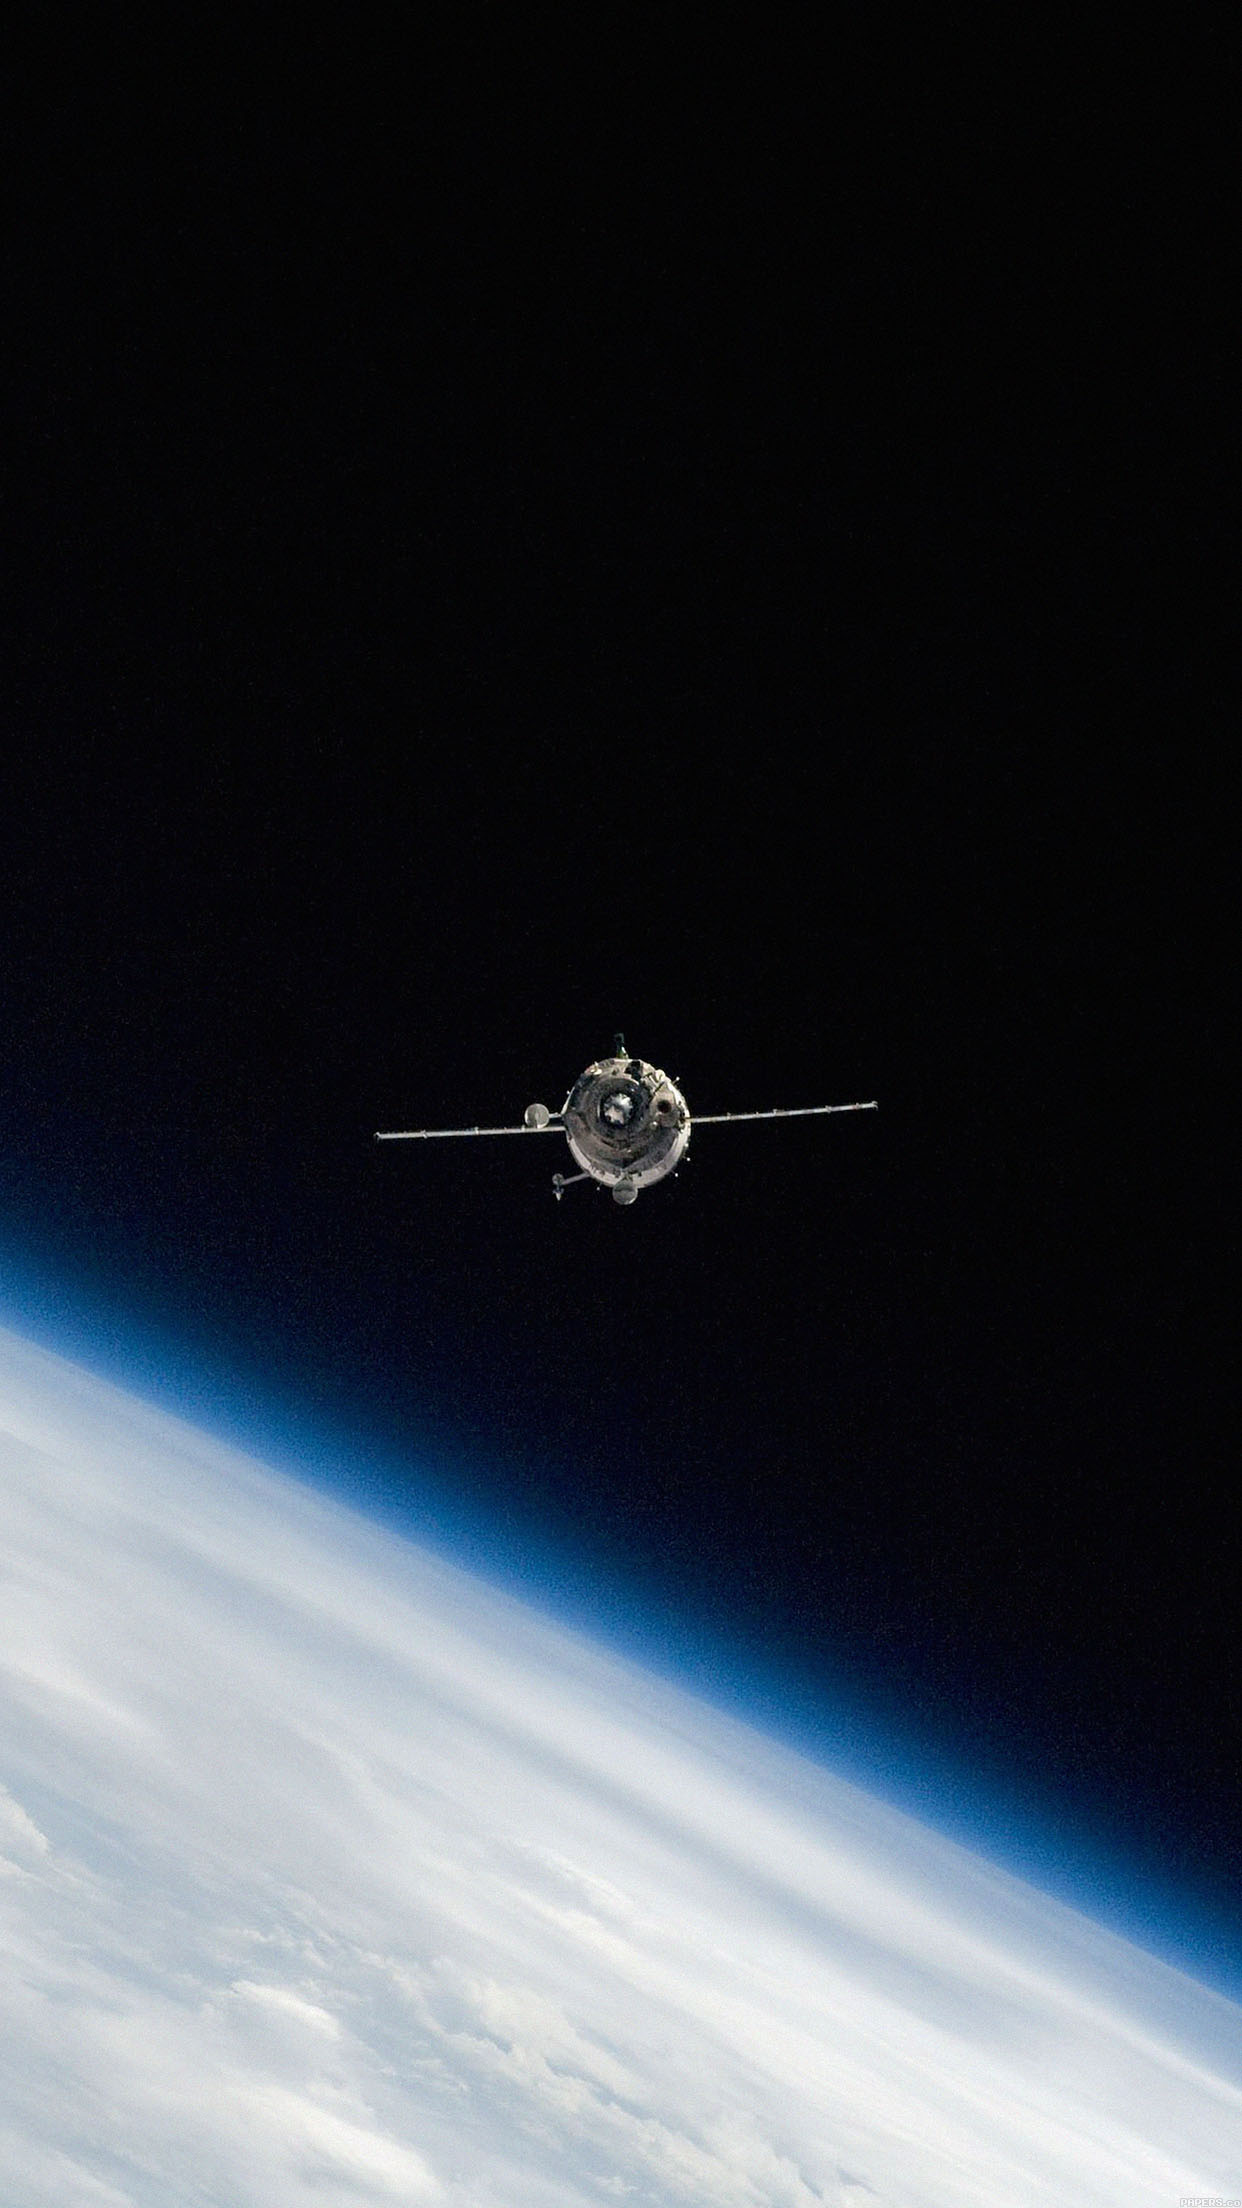 Mc40 Wallpaper Space Cosmos Satellite Earth Papers Co